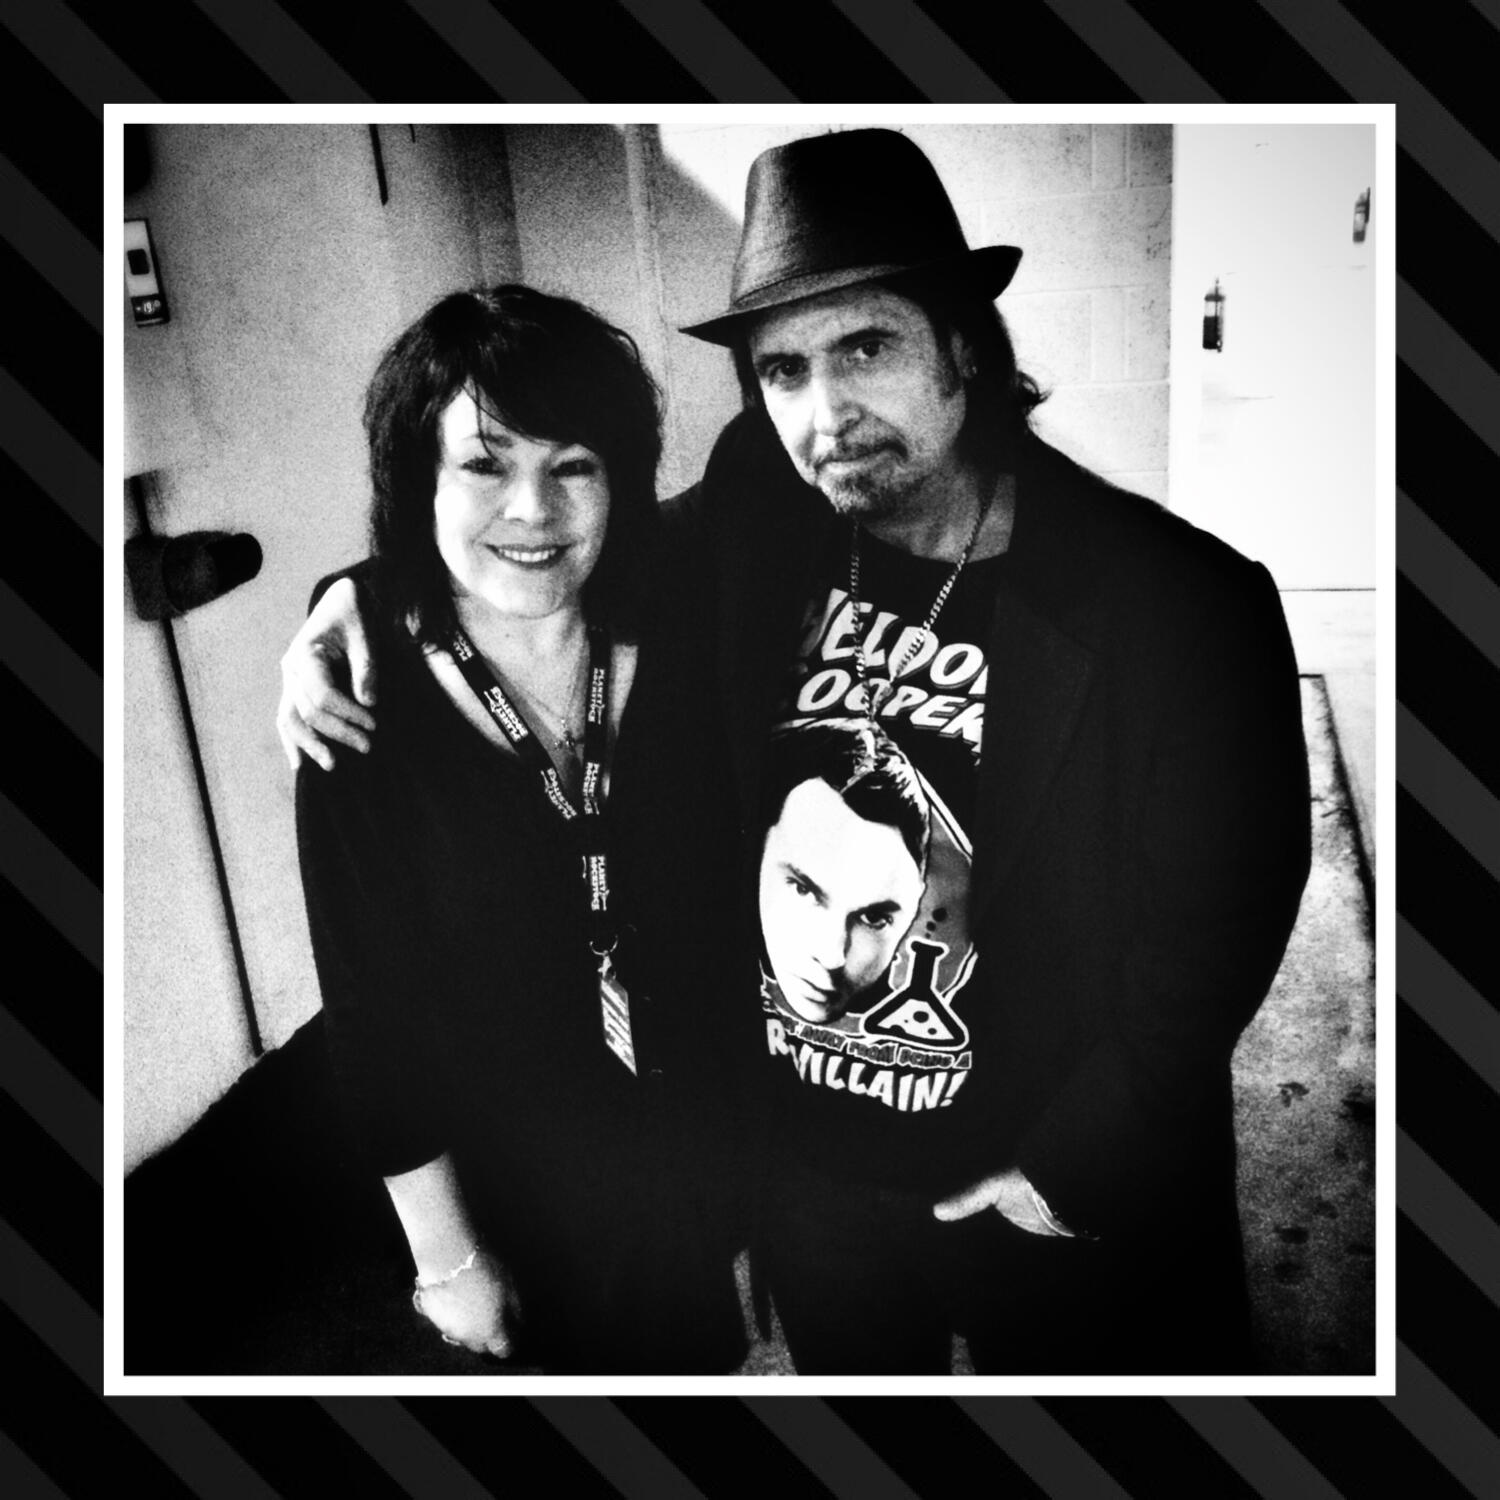 54: The one with Motorhead's Phil Campbell